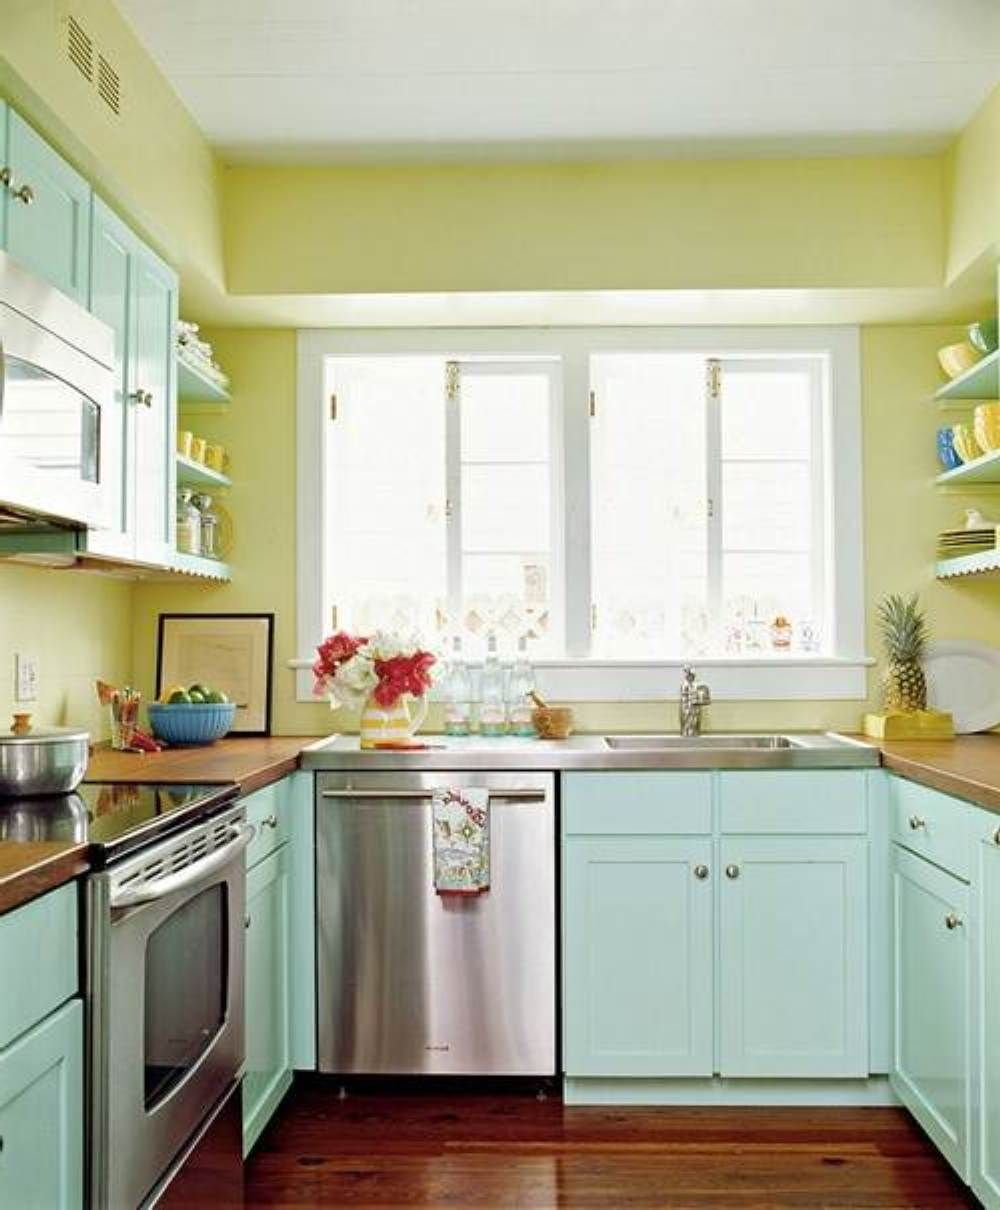 Interior Design Ideas Kitchen Color Schemes: Small Kitchen Design Ideas